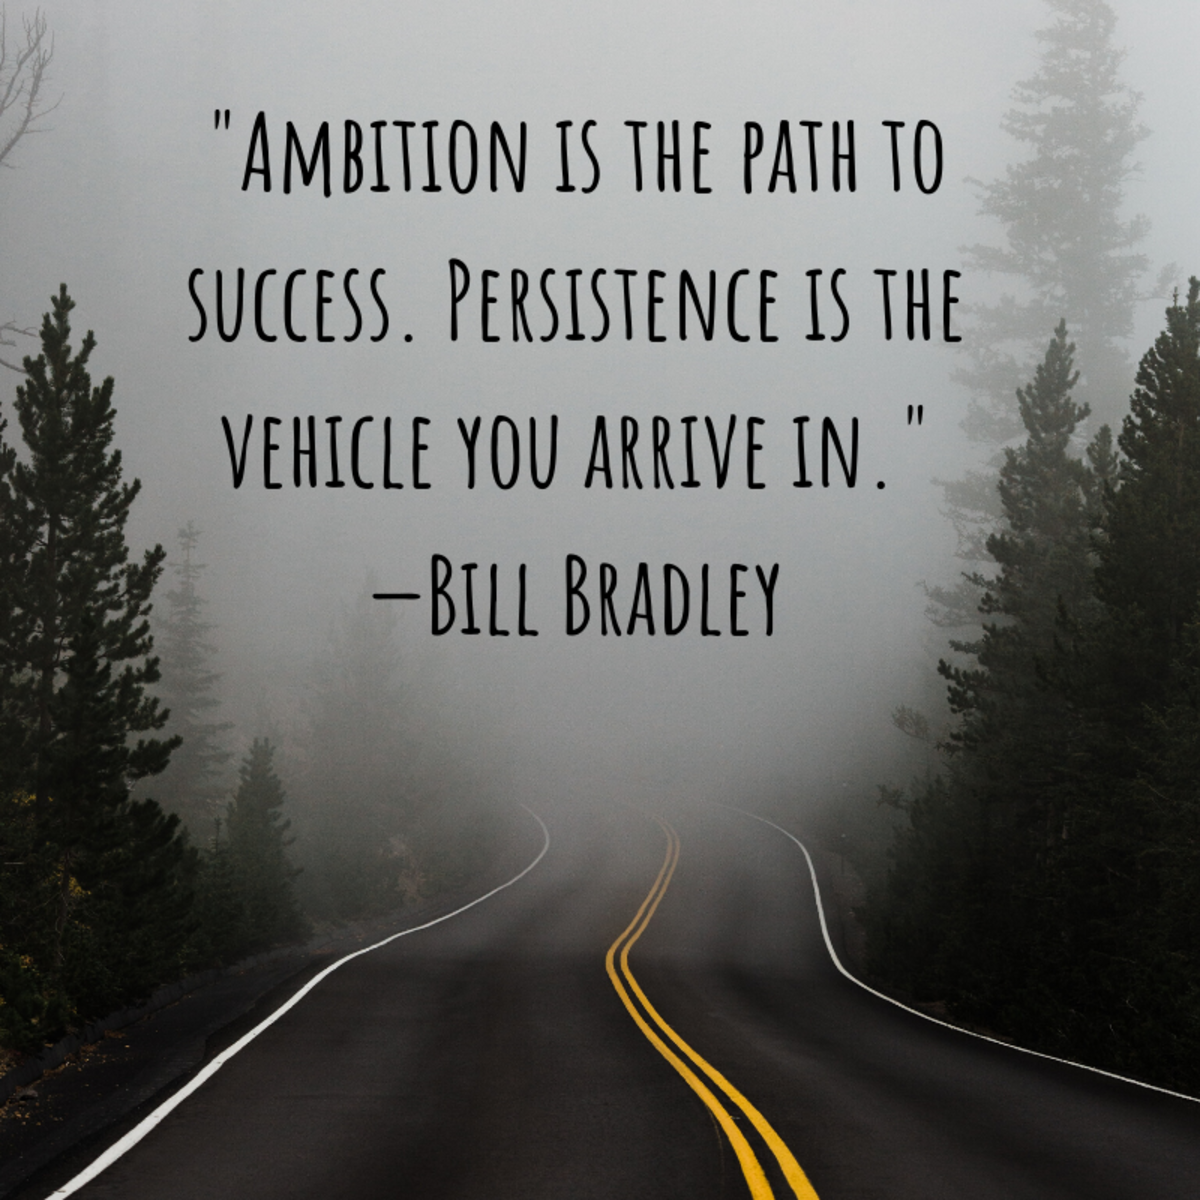 """Ambition is the path to success. Persistence is the vehicle you arrive in."" —Bill Bradley"